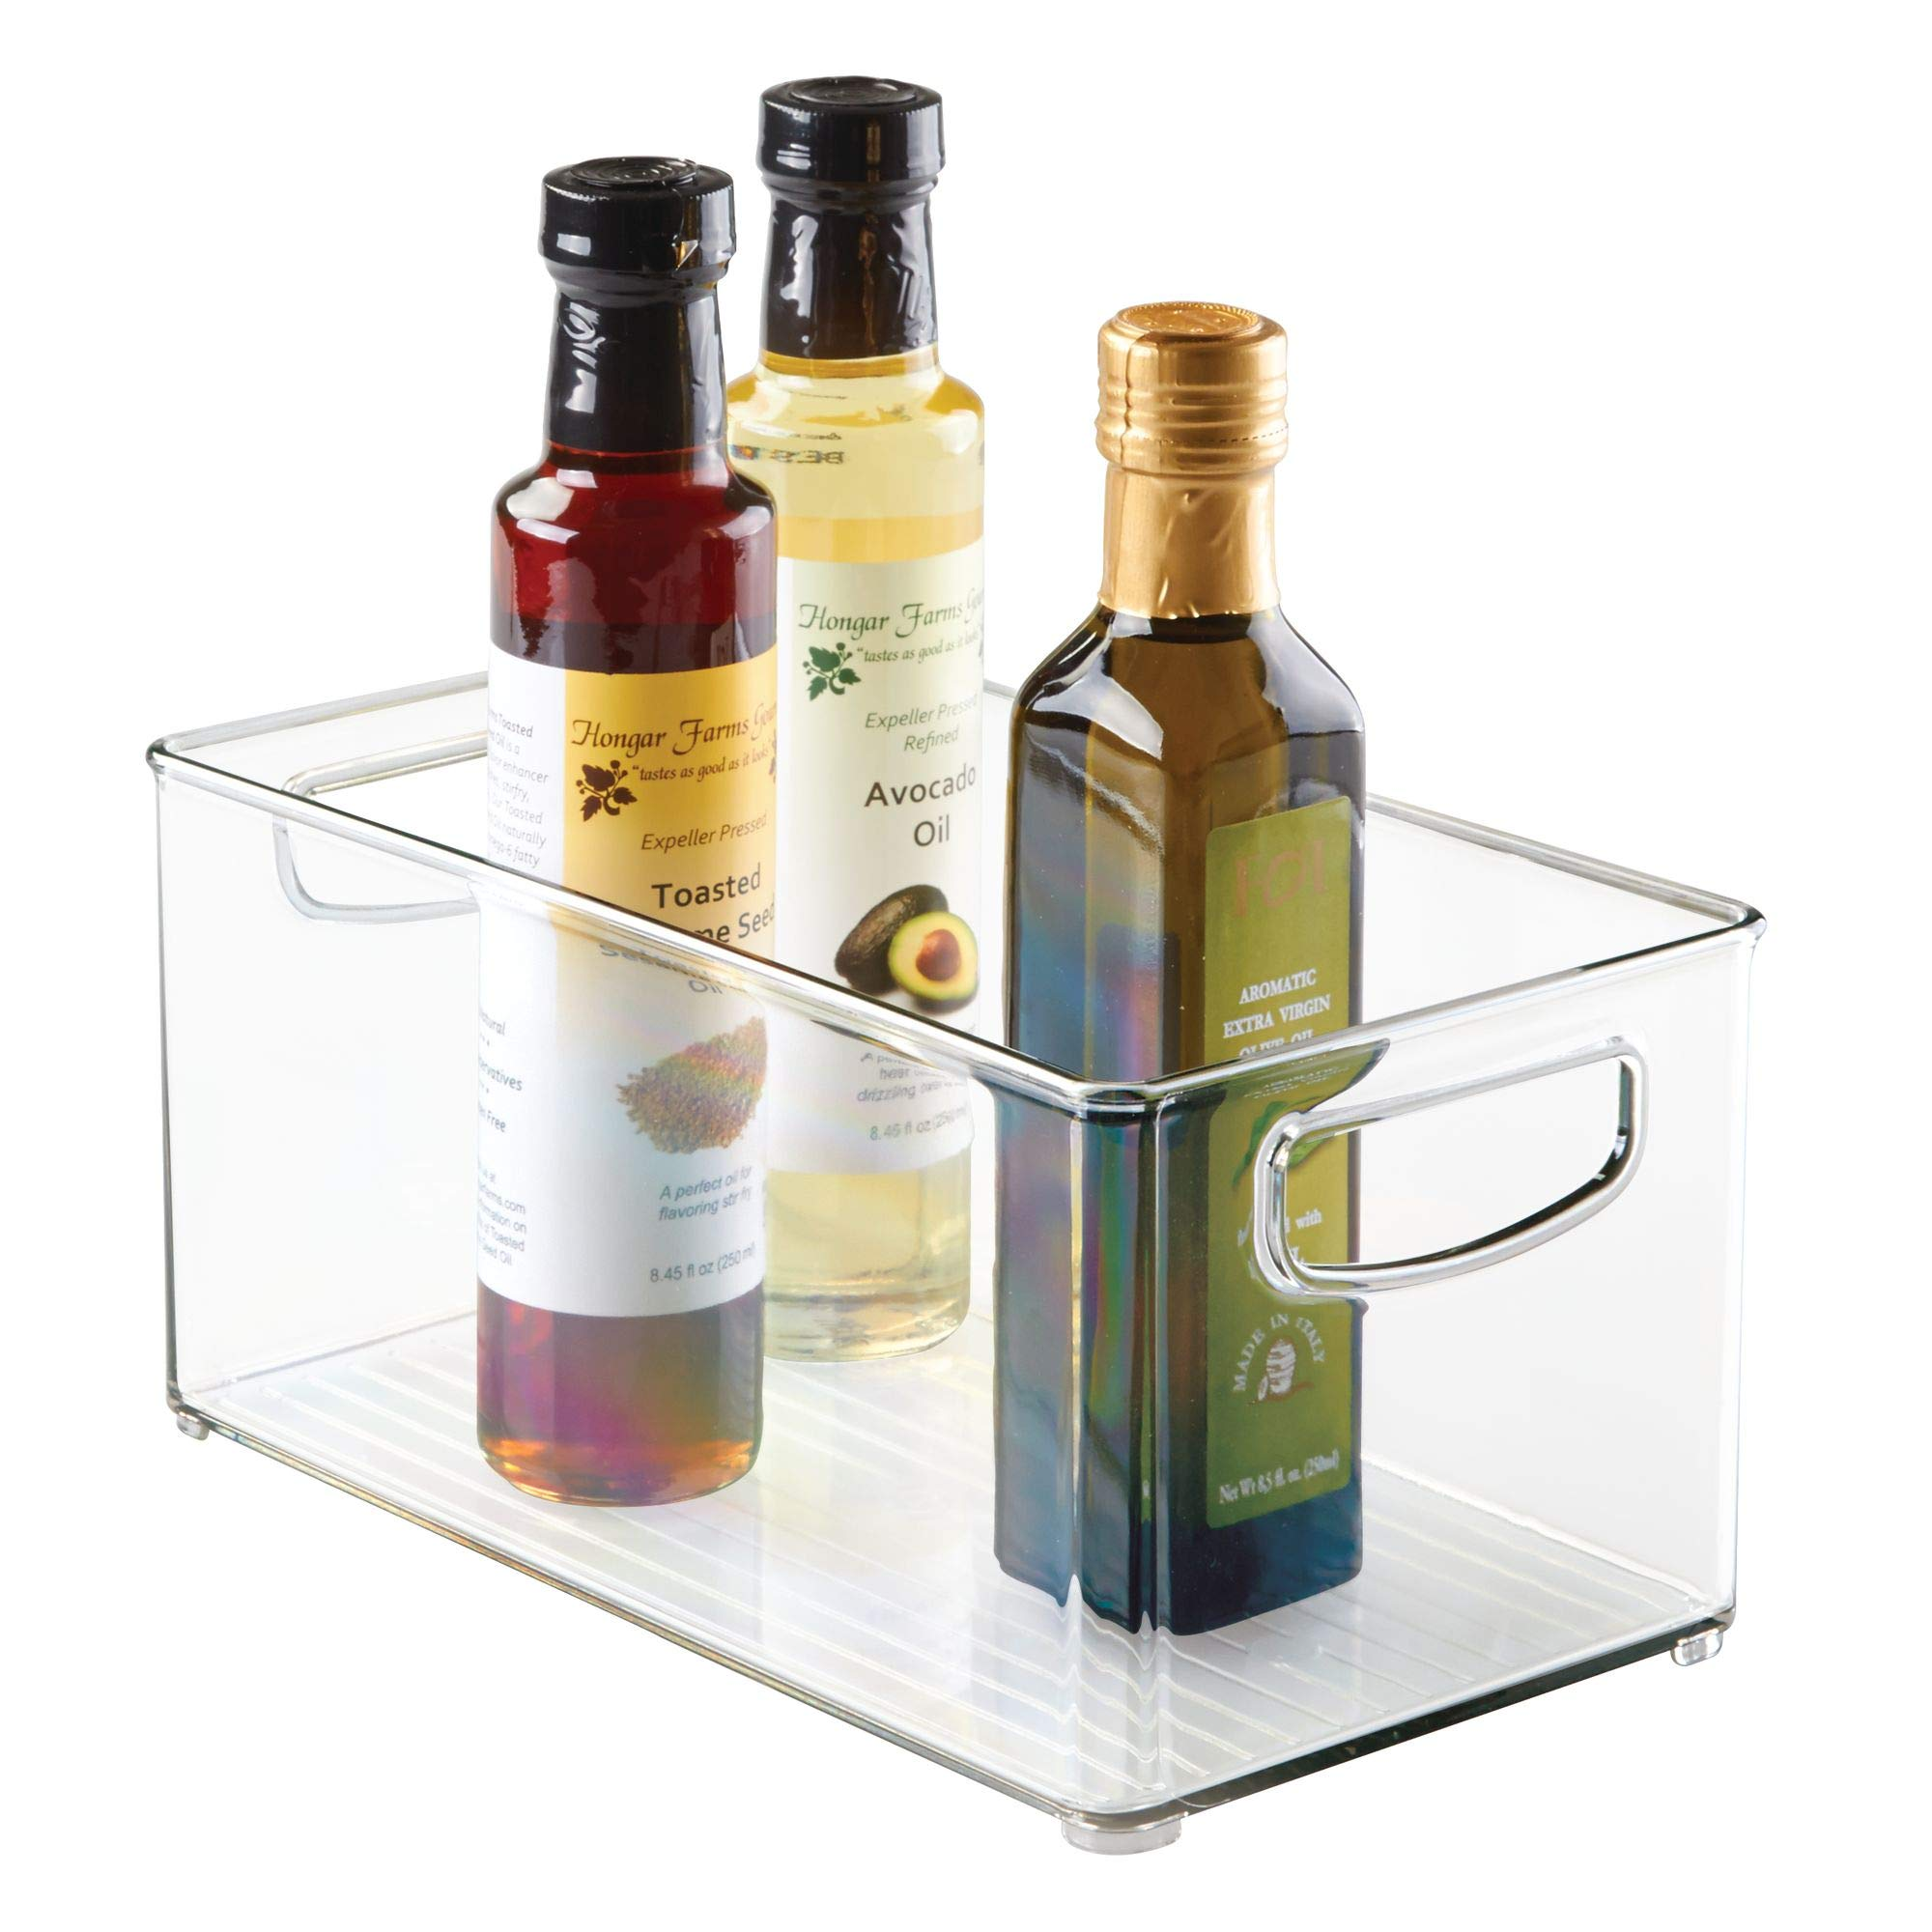 interDesign Plastic Storage Bin with Handles for Kitchen, Fridge, Freezer, Pantry, and Cabinet Organization, BPA-Free, 10'' x 6'' x 5'' Clear 3 Ounce